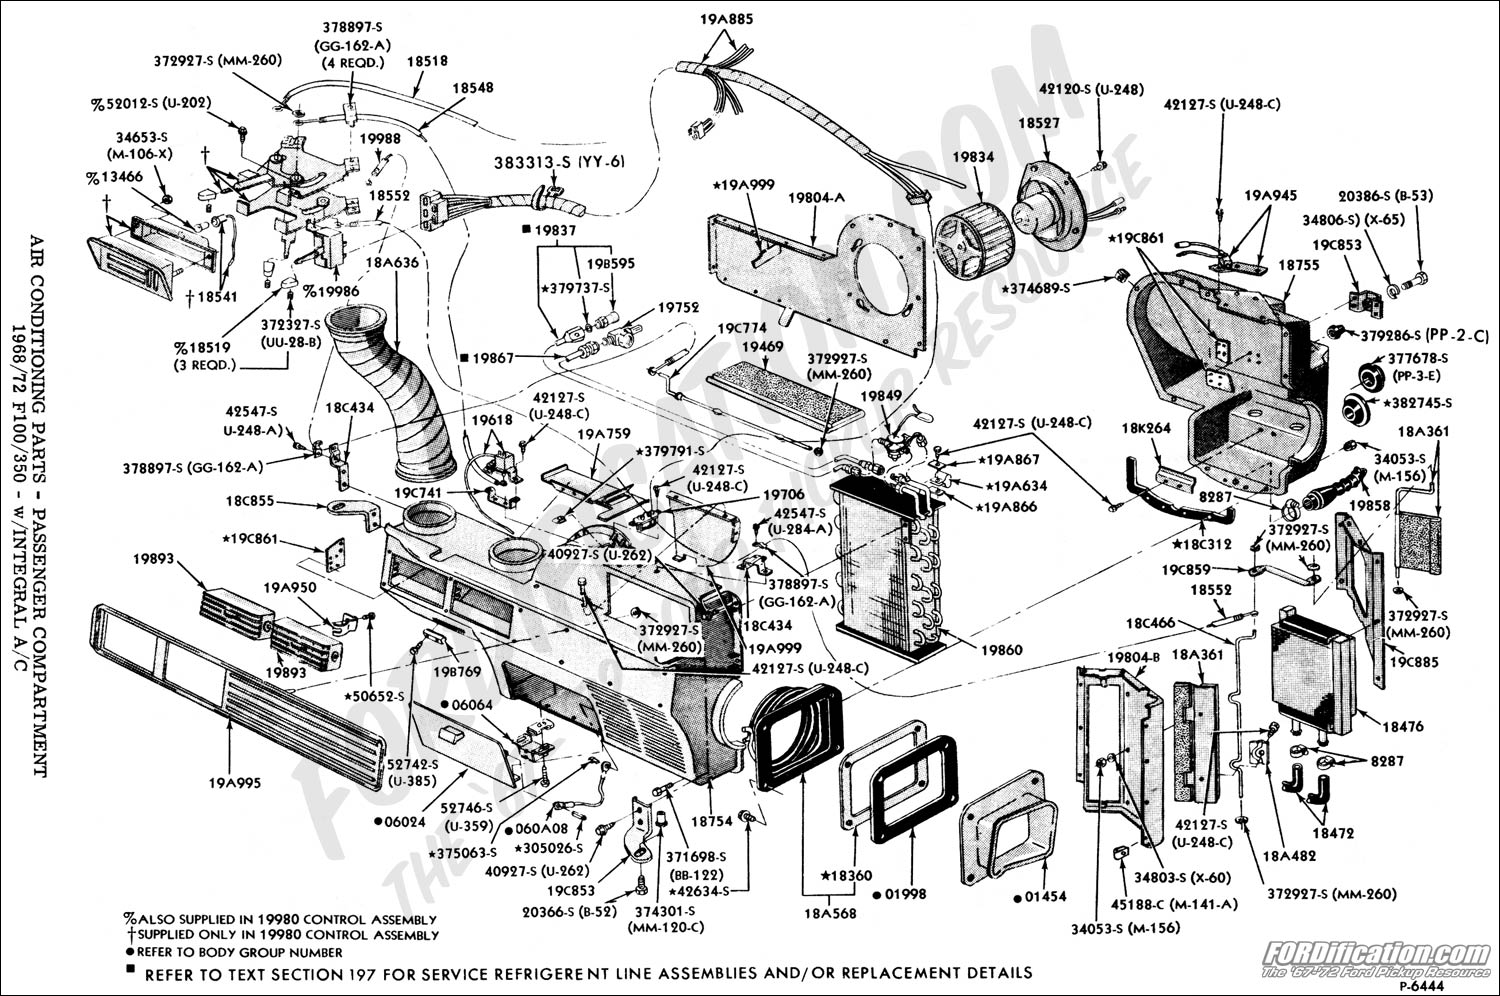 Ford Truck Technical Drawings and Schematics - Section F - Heating/Cooling/ Air-Conditioning | Ford F 350 Air Conditioner Wire Diagrams |  | FORDification.com